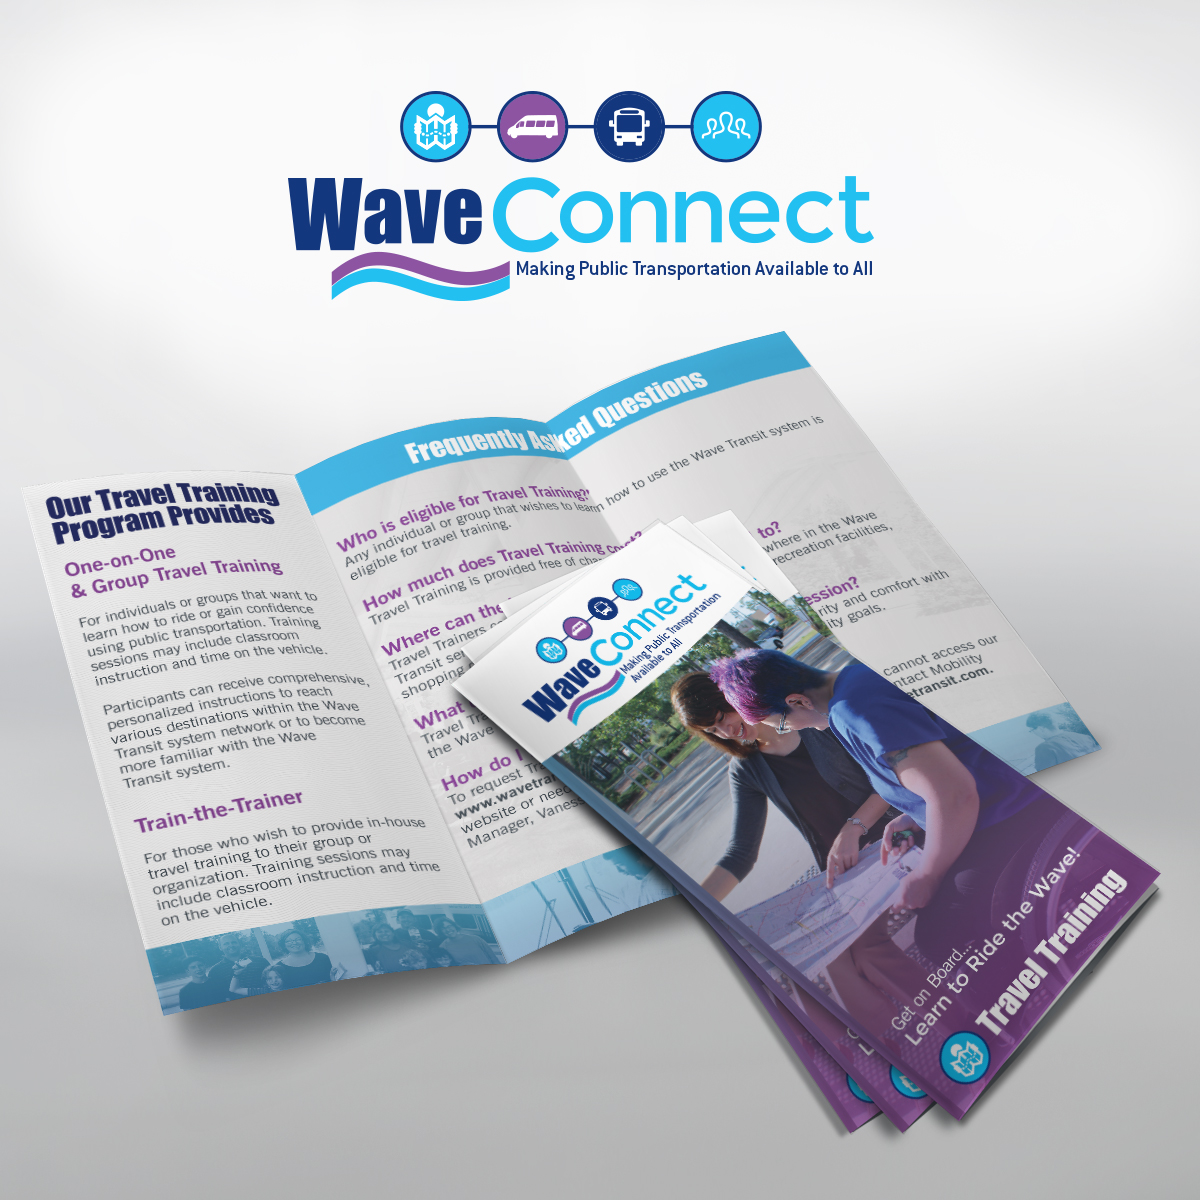 wave-connect-branding-shared-post